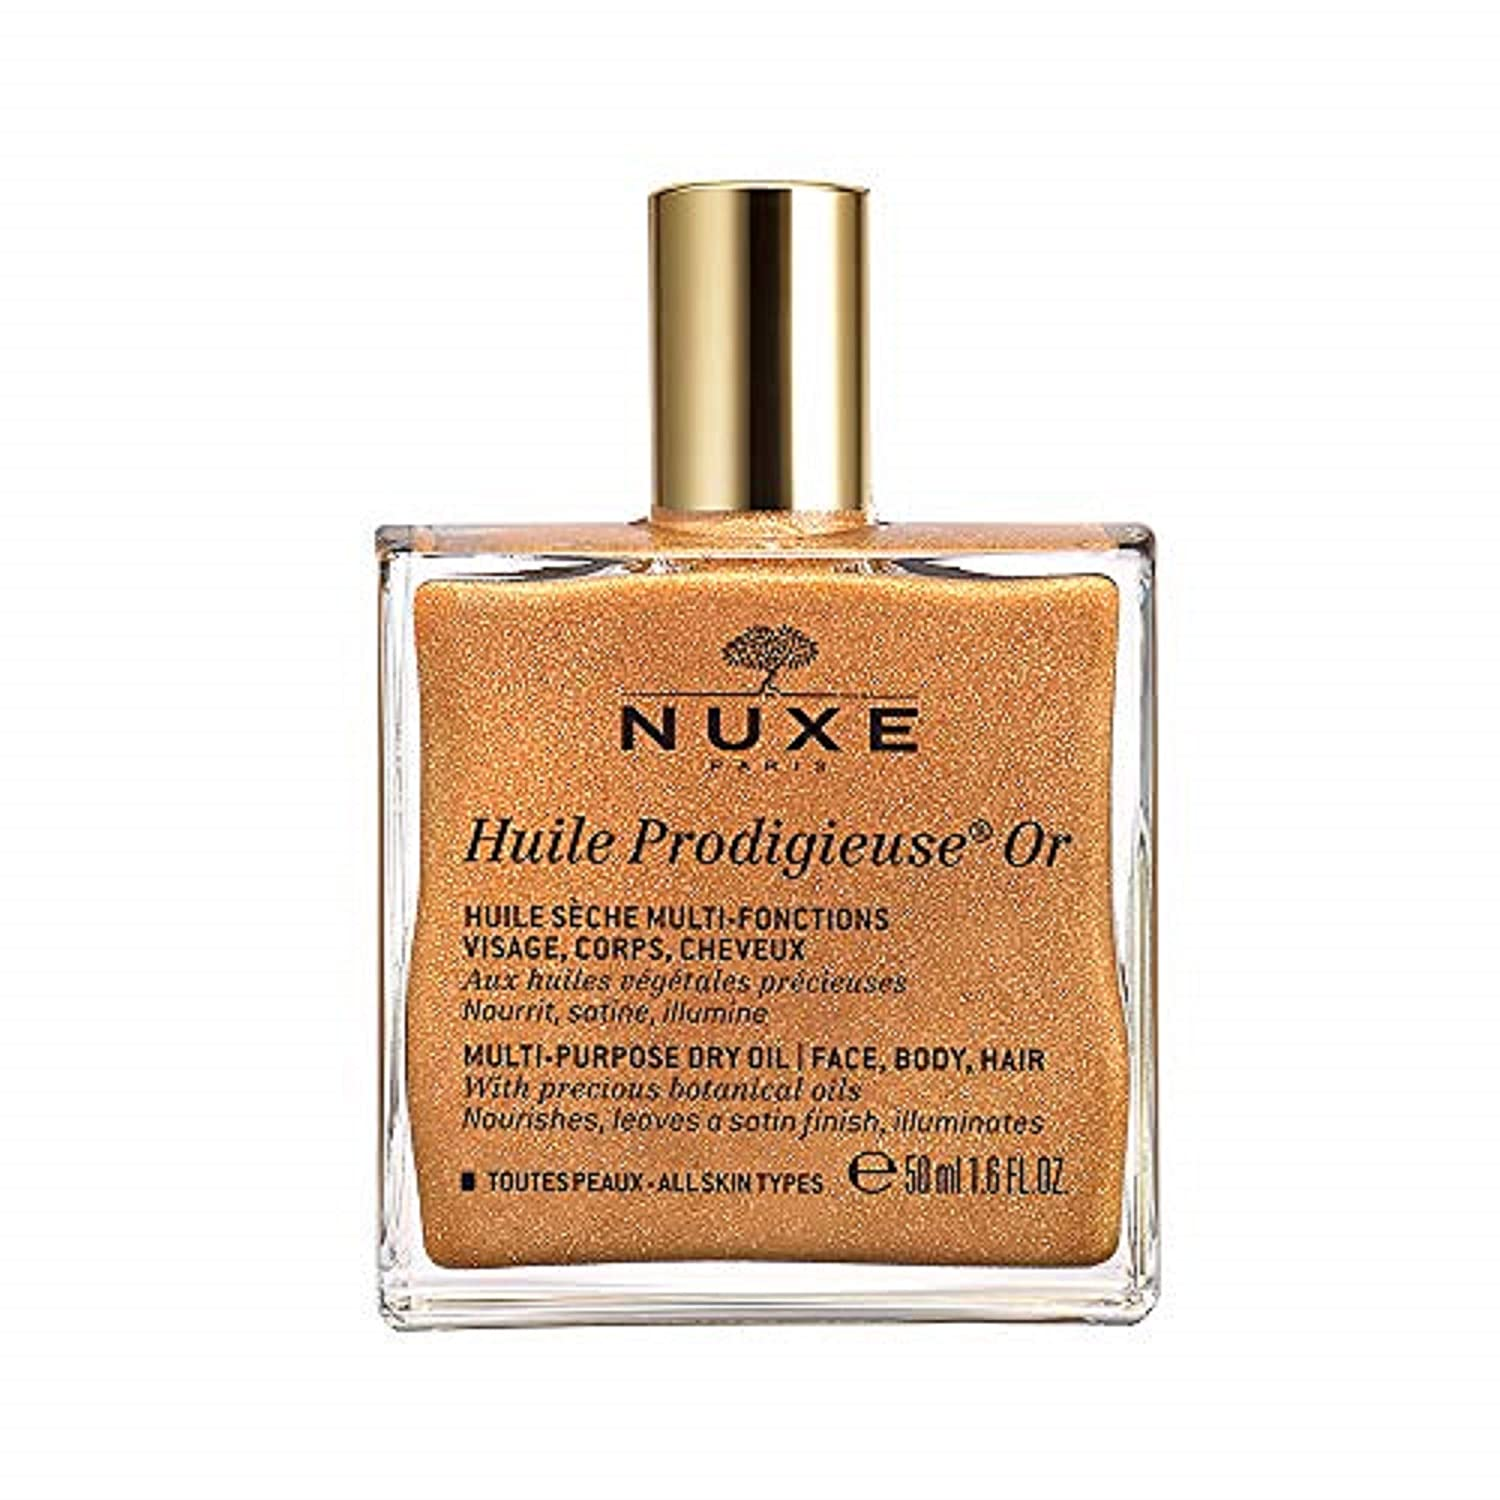 Nuxe Huile 'Prodigieuse Or' Multi Usage Dry Oil Golden Shimmer